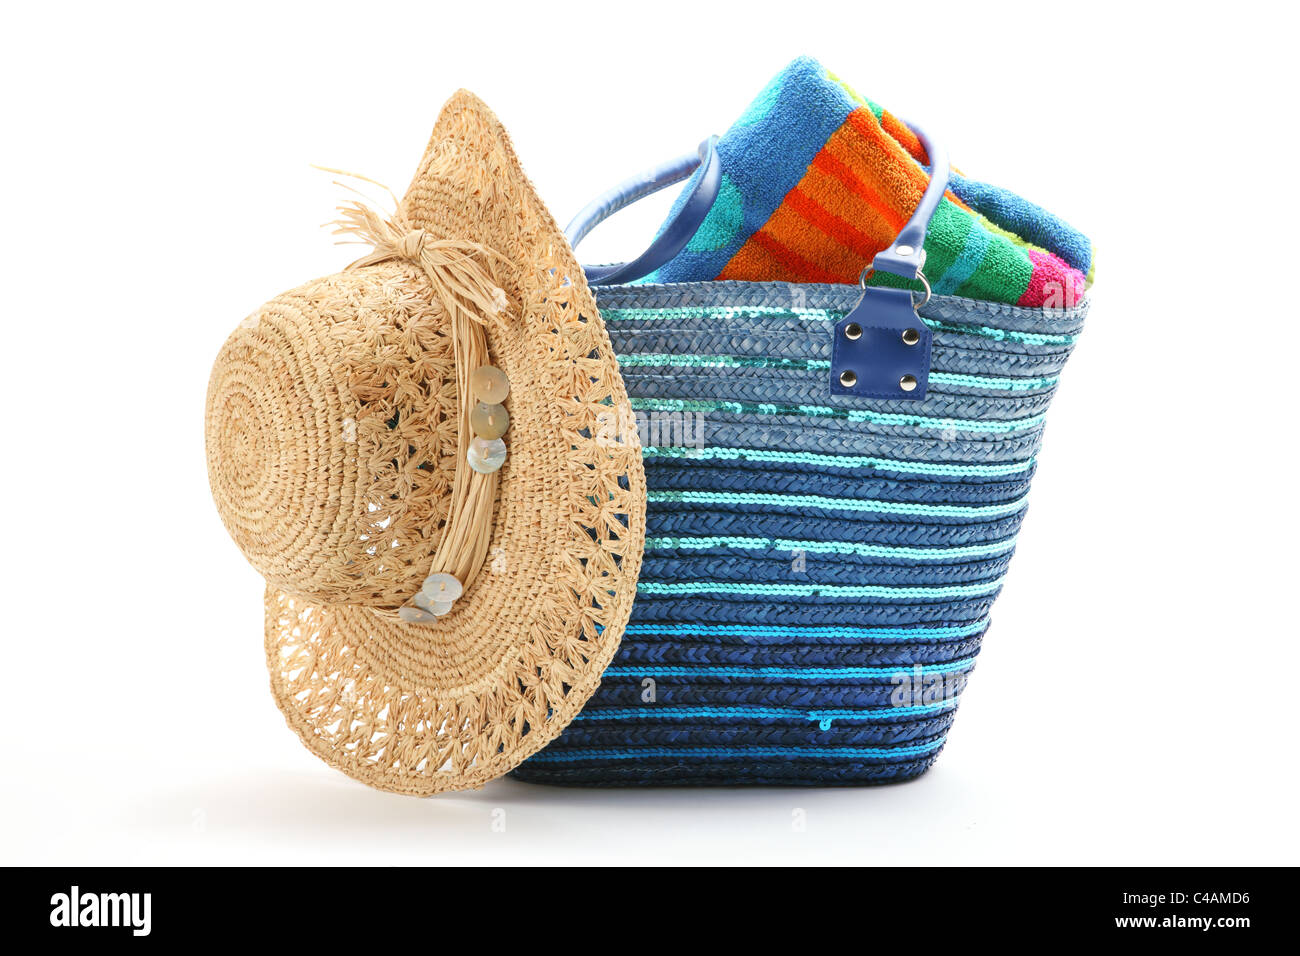 Beach bag with straw hat and towel,isolated on white background. - Stock Image